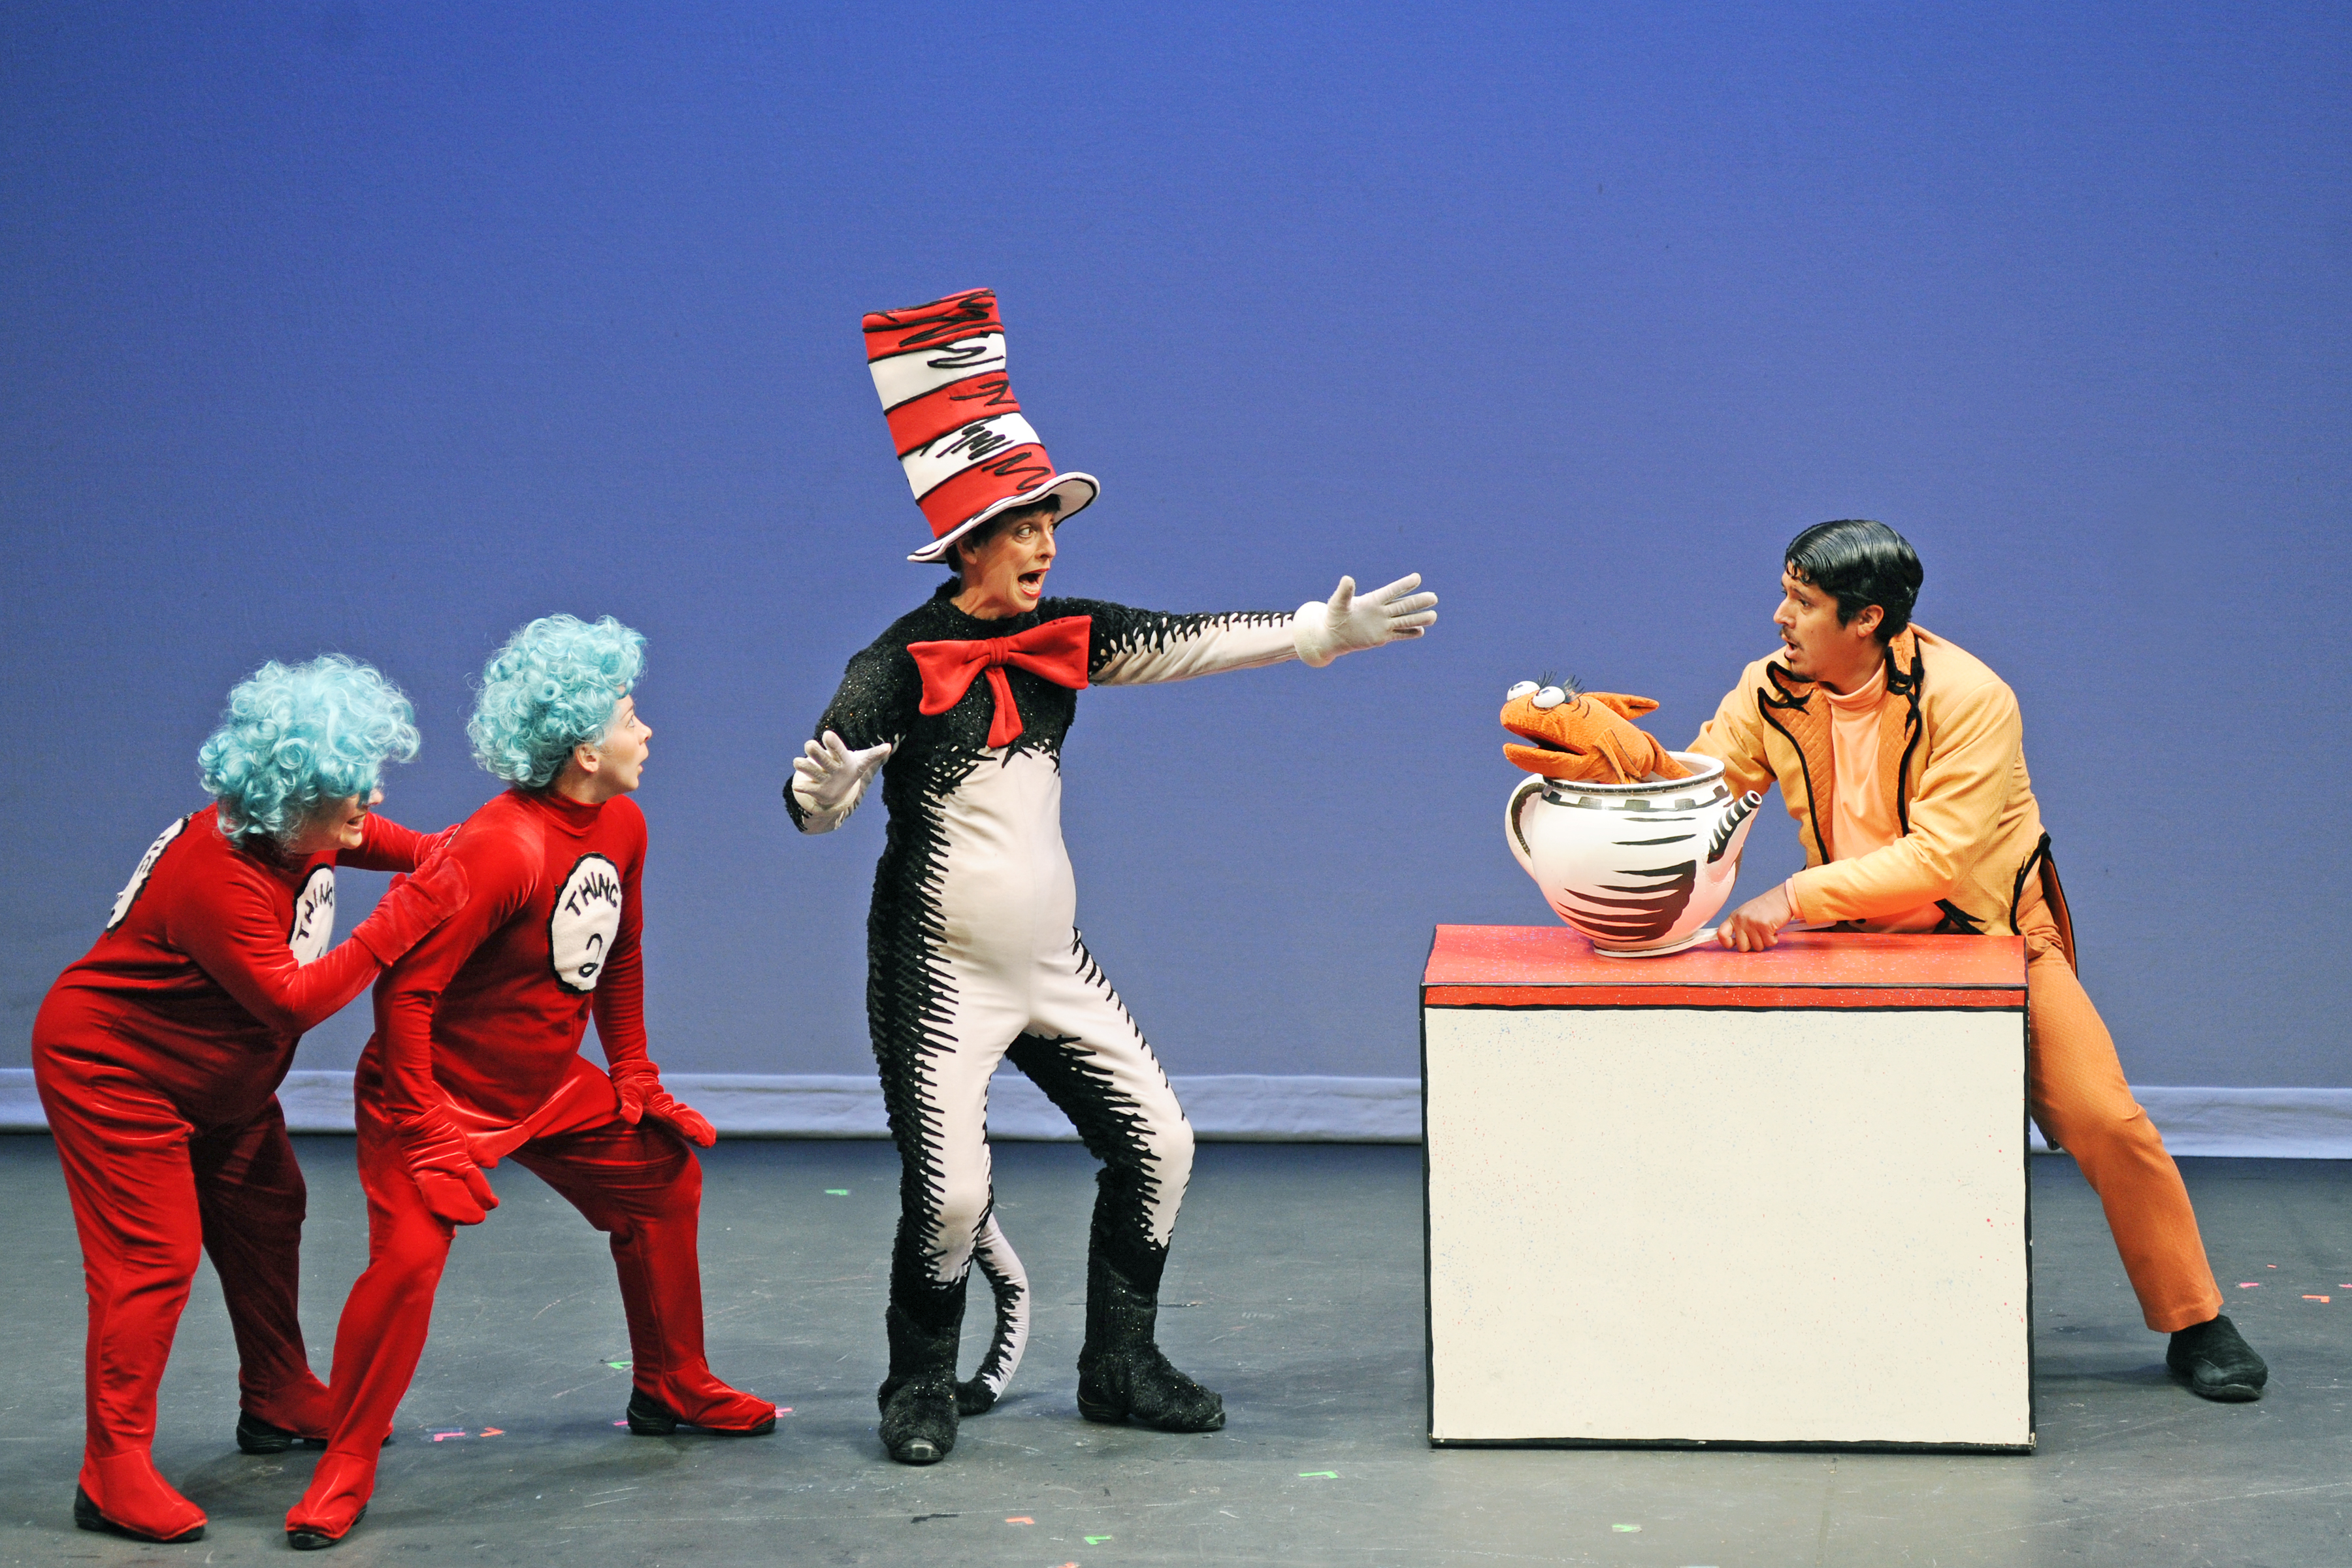 Dr Seuss Characters Costumes Sally The character of the fish was